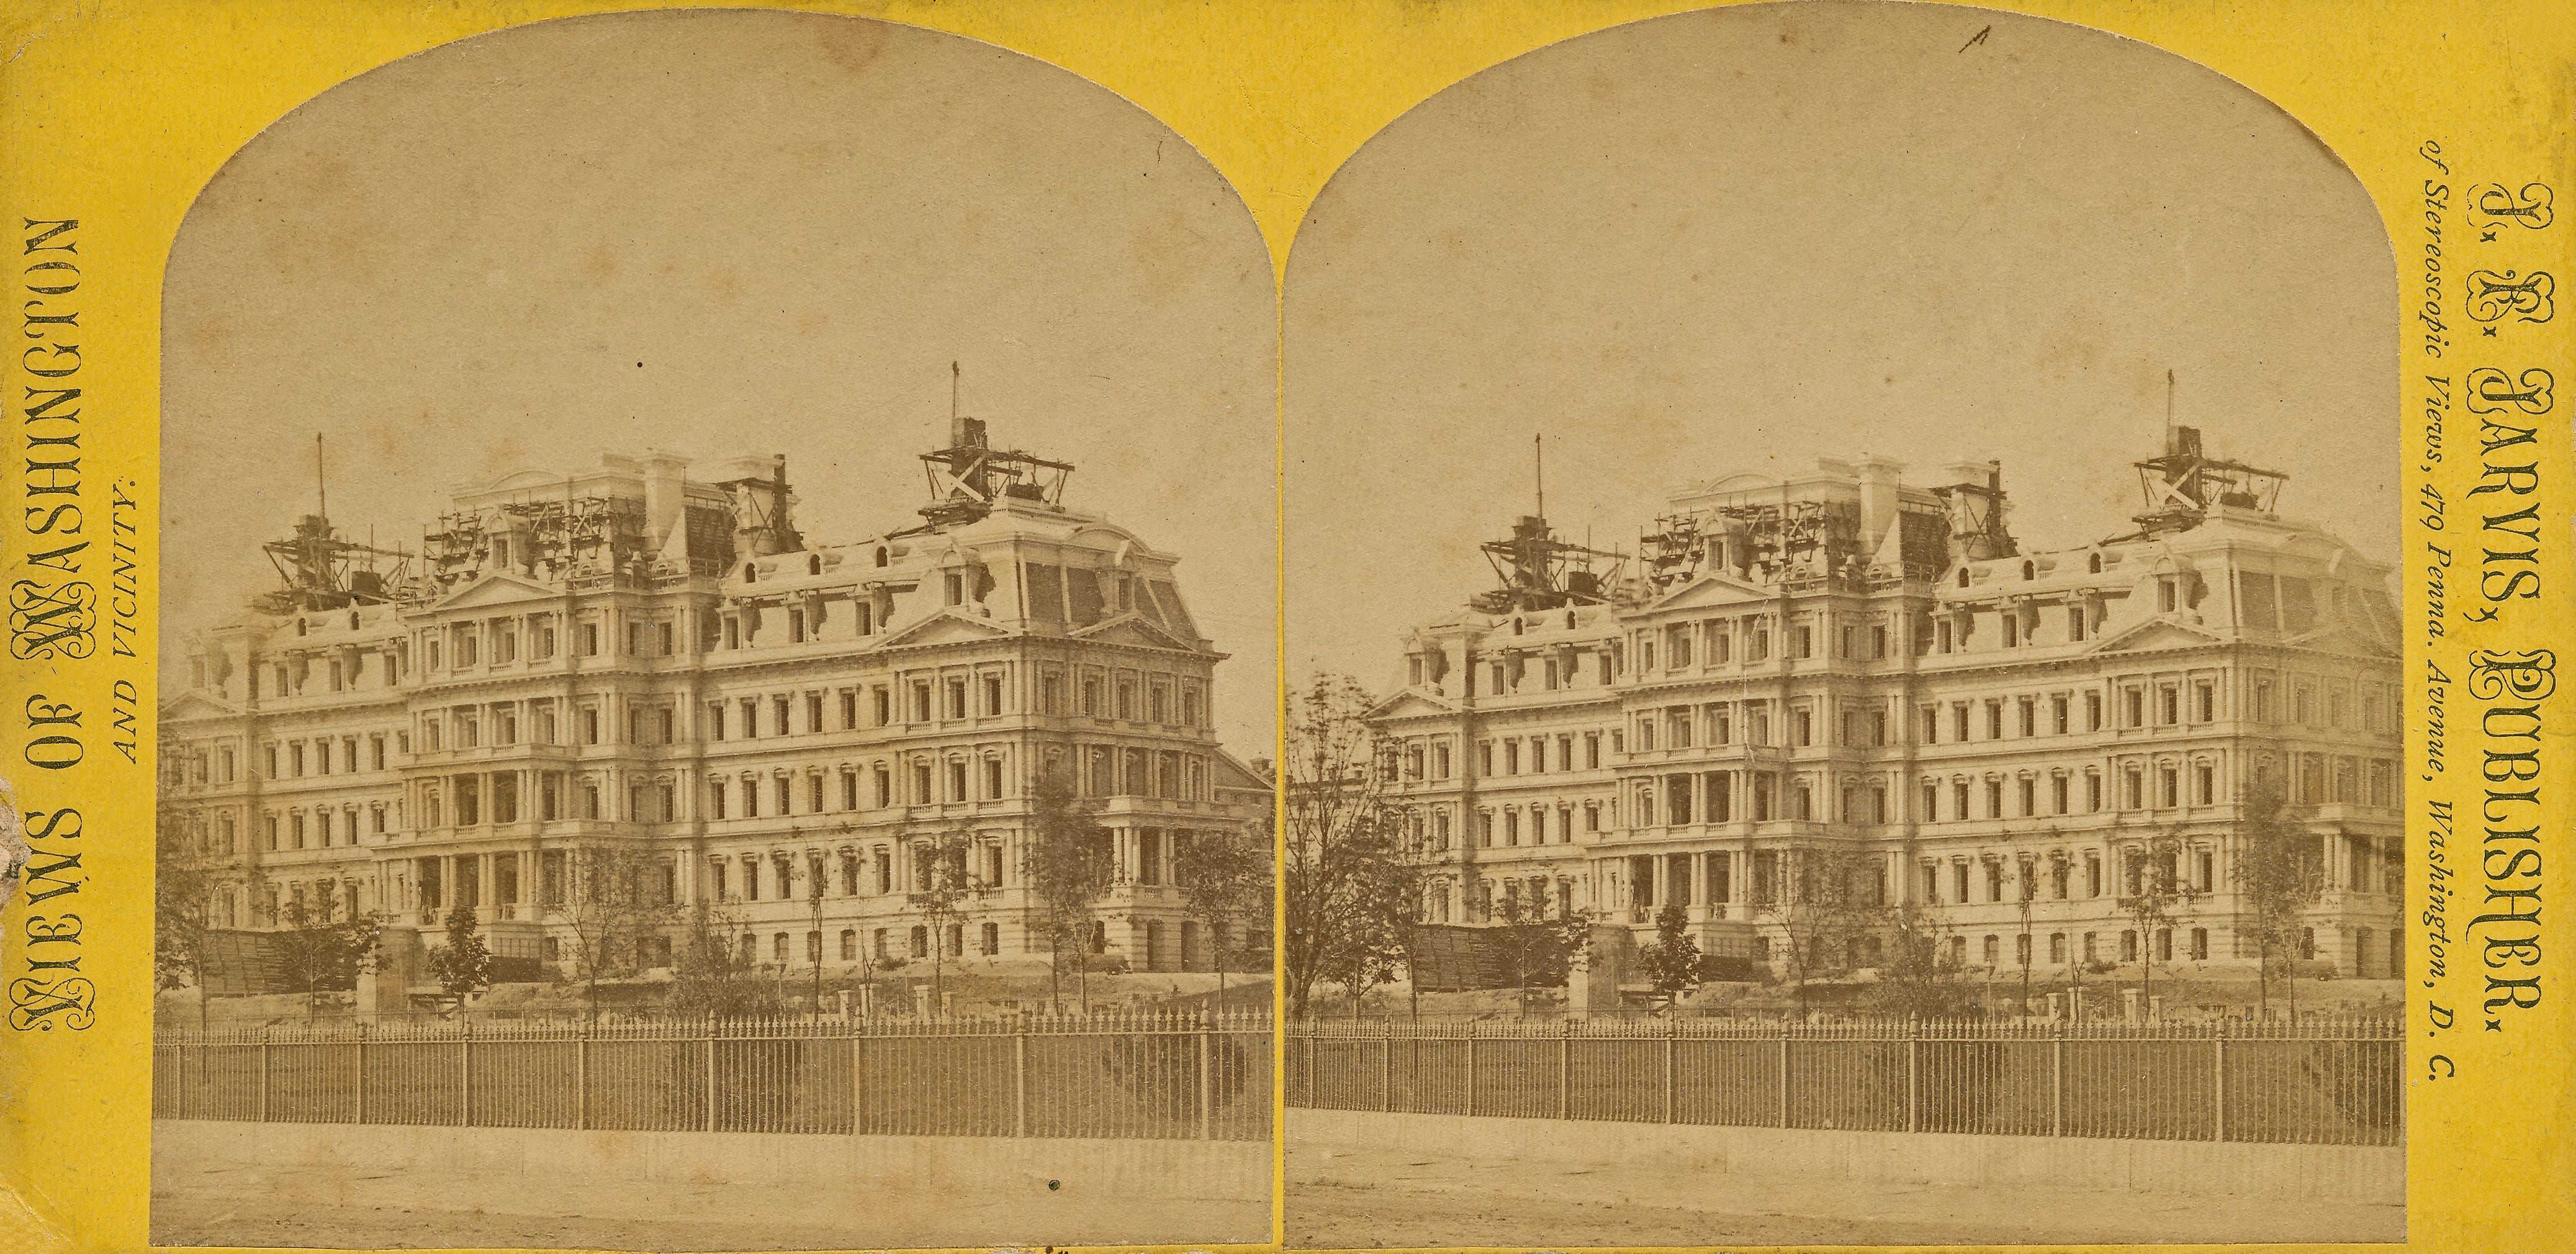 Here's a circa 1876 stereoview image of the Old Executive Office Building under construction just as the south wing (for the State Department) was nearing completion. You can see just a tiny bit of the old Navy Department building--one of the original ones designed by George Hadfield--on the right, behind the new building. It would take 17 years to finish the whole thing.